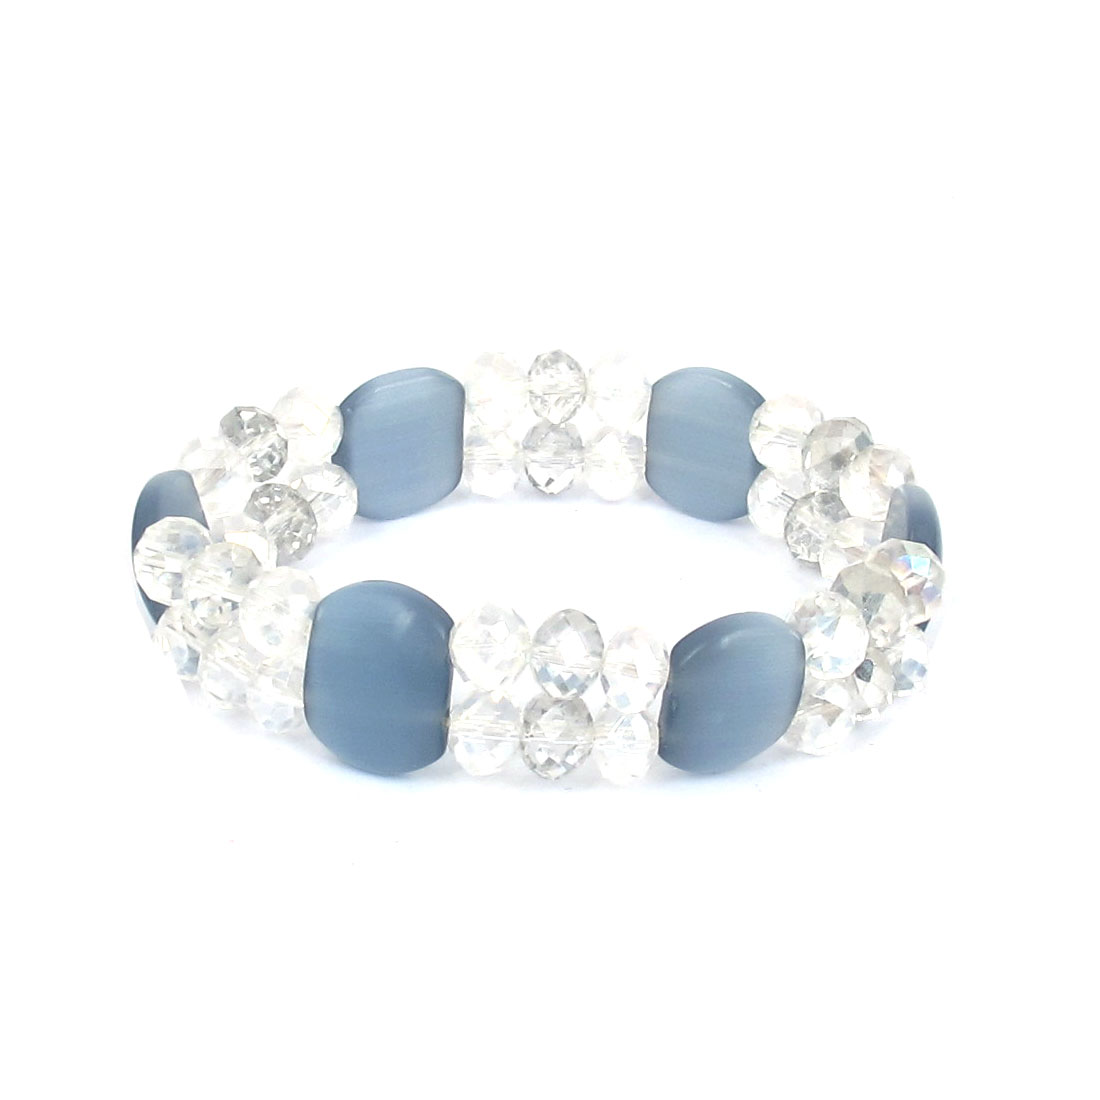 Faceted Faux Crystal Opal Beads Decor Elastic Wrist Bangle Bracelet Blue Clear for Lady